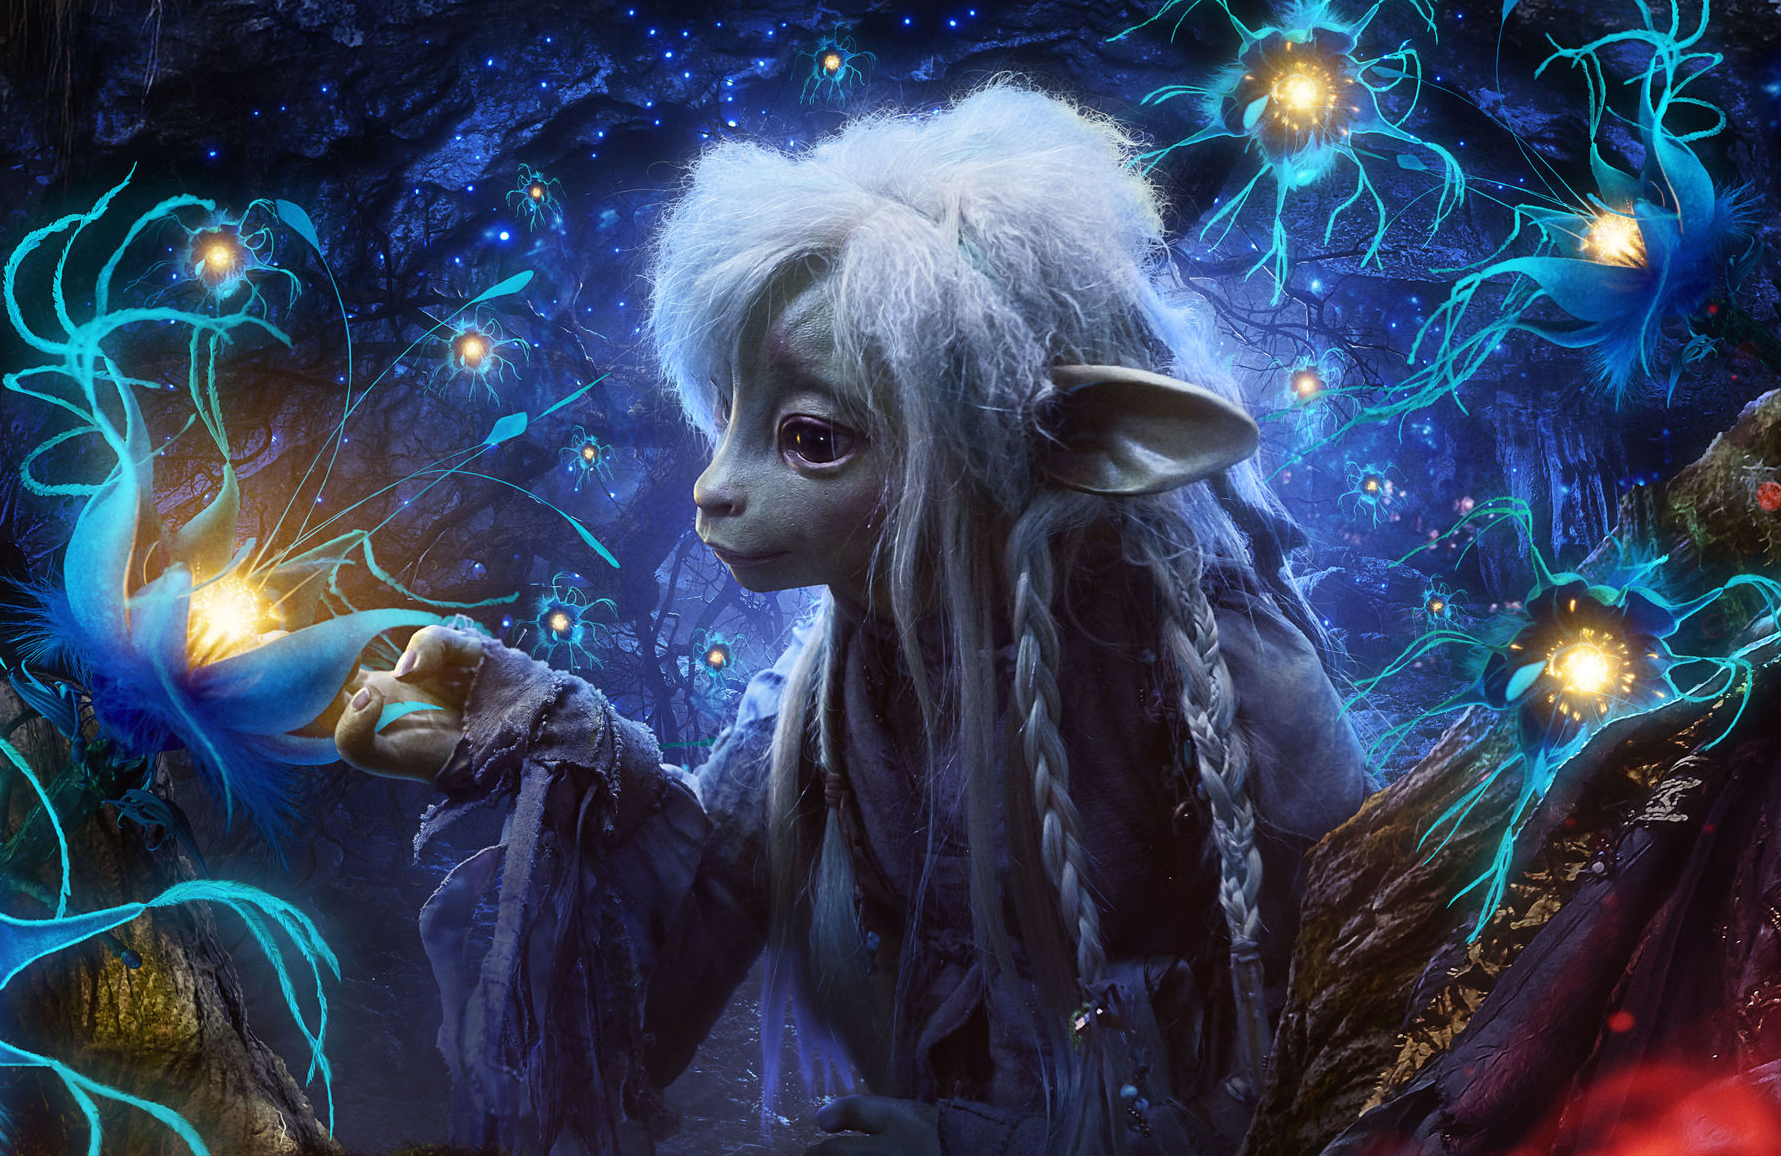 A promotional image from The Dark Crystal: Age of Resistance. (Netflix)